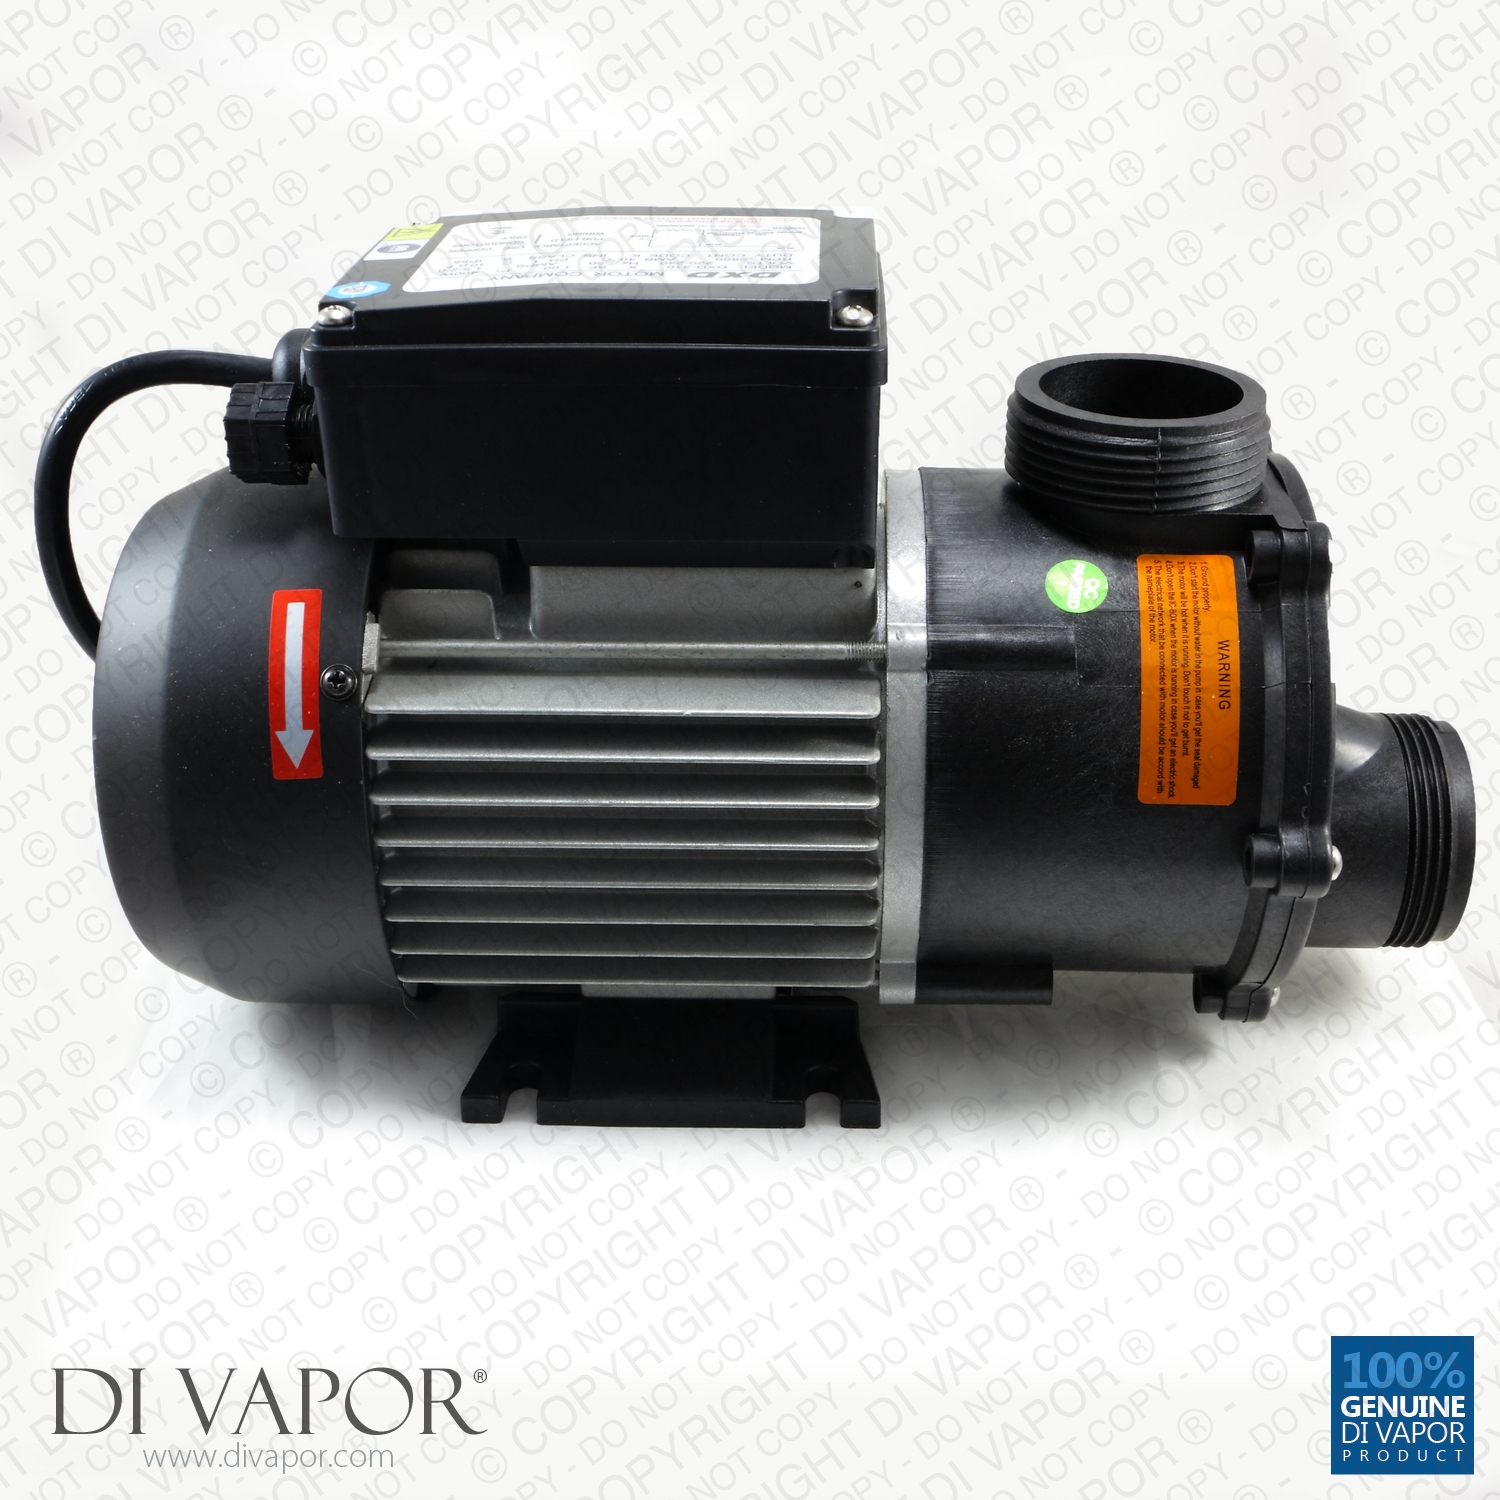 Dxd 310x 0 40kw 0 5hp Water Pump For Hot Tub Spa